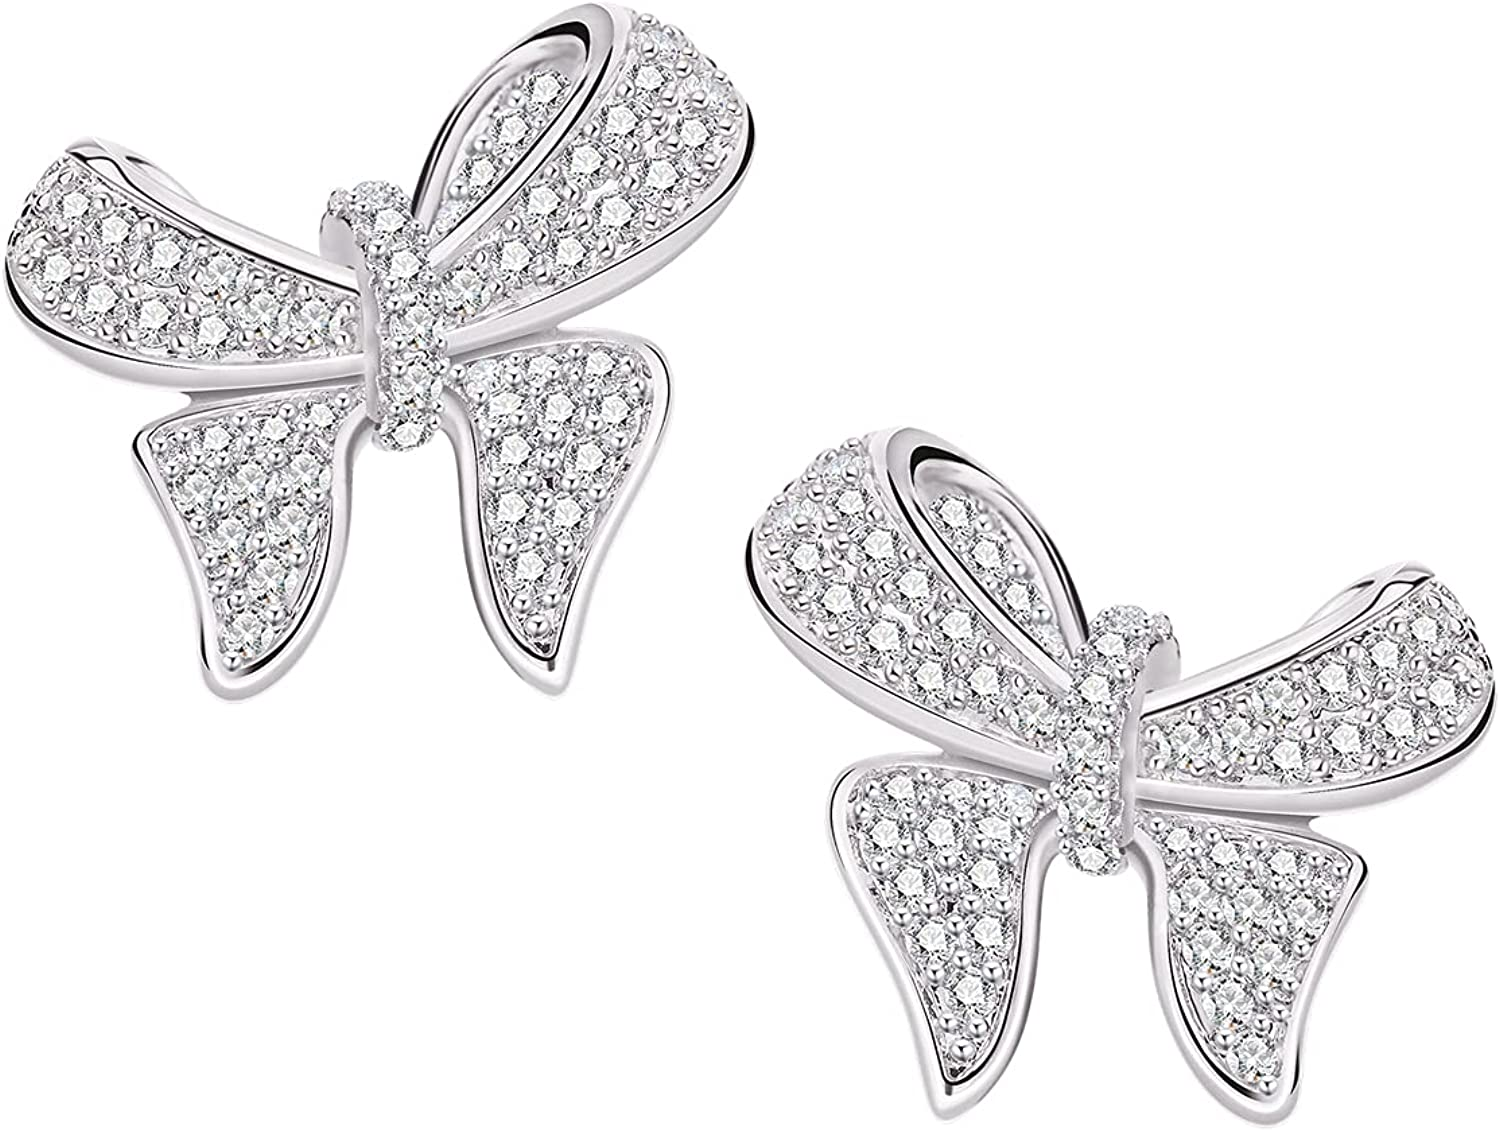 Big 2021 model Industry No. 1 Butterfly Earrings for Women - 3D Bow Pave CZ Stud